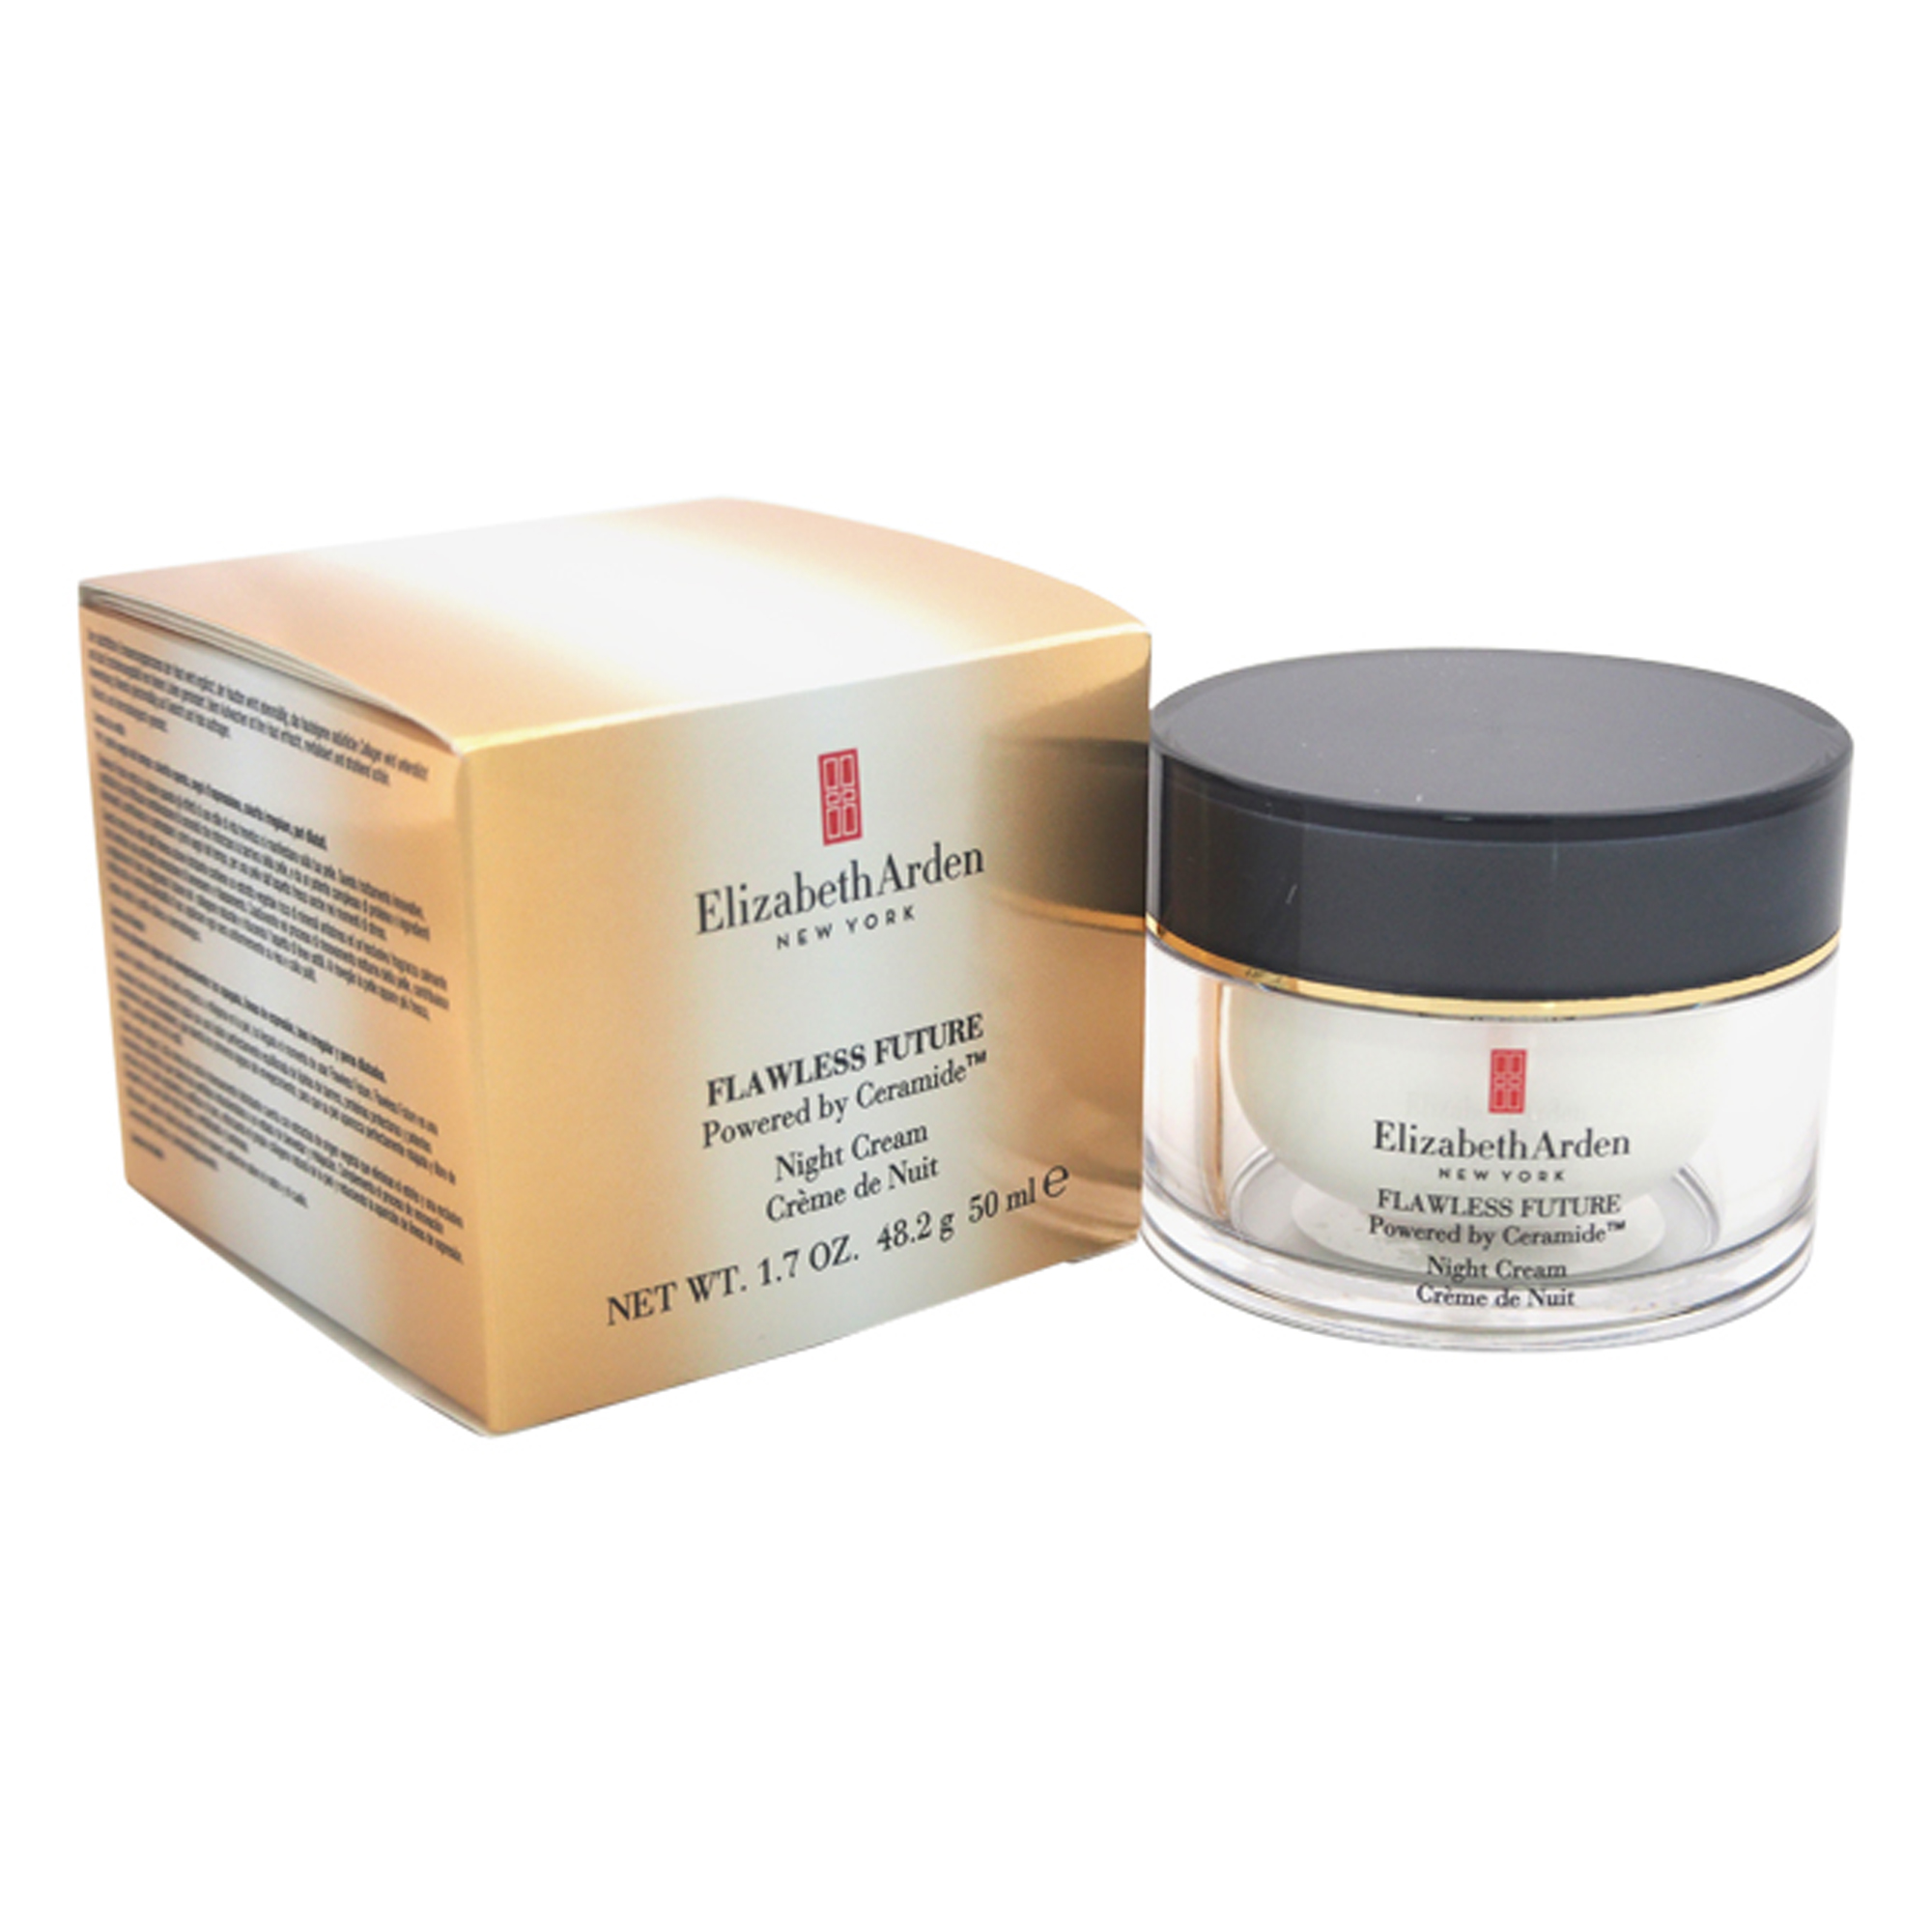 Elizabeth Arden Flawless Future Powered By Ceramide Night Cream By Elizabeth Arden For Women 1 7 Oz Moisturizer Walmart Com Walmart Com